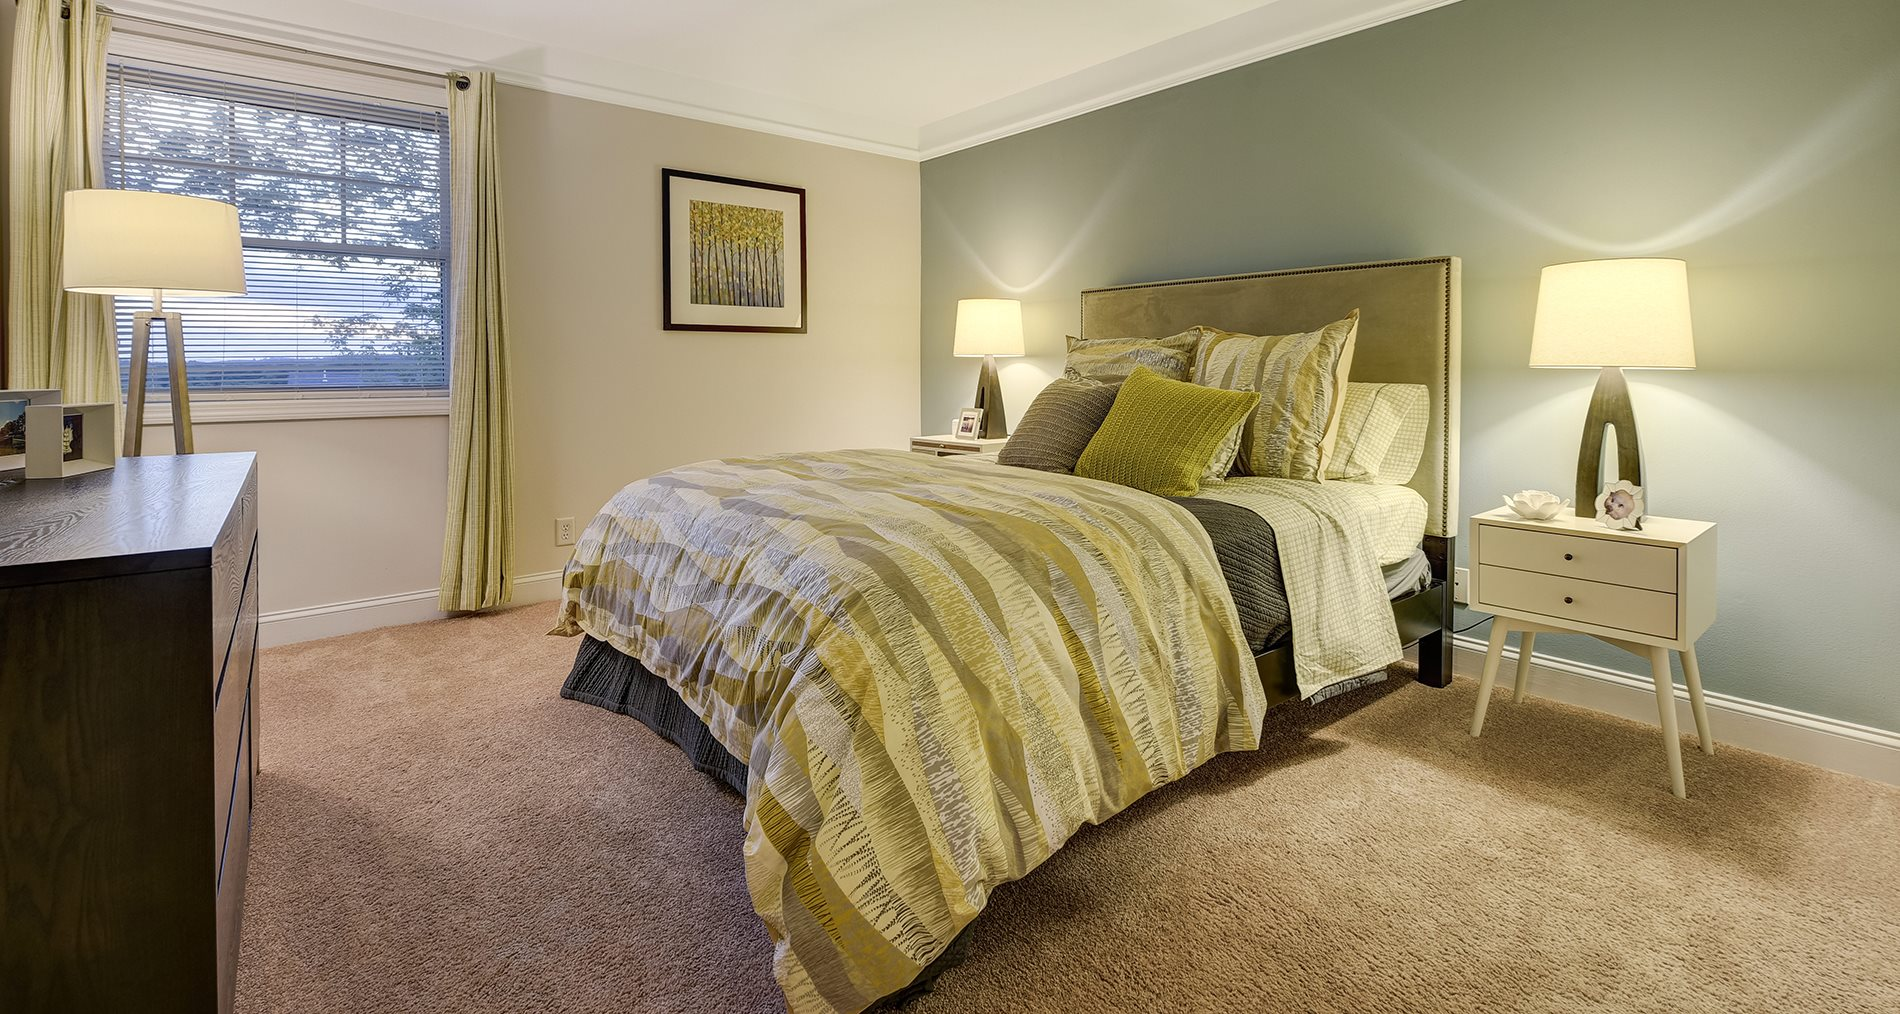 Windsor village at waltham apartments in waltham ma home for 1 bedroom apartments in waltham ma